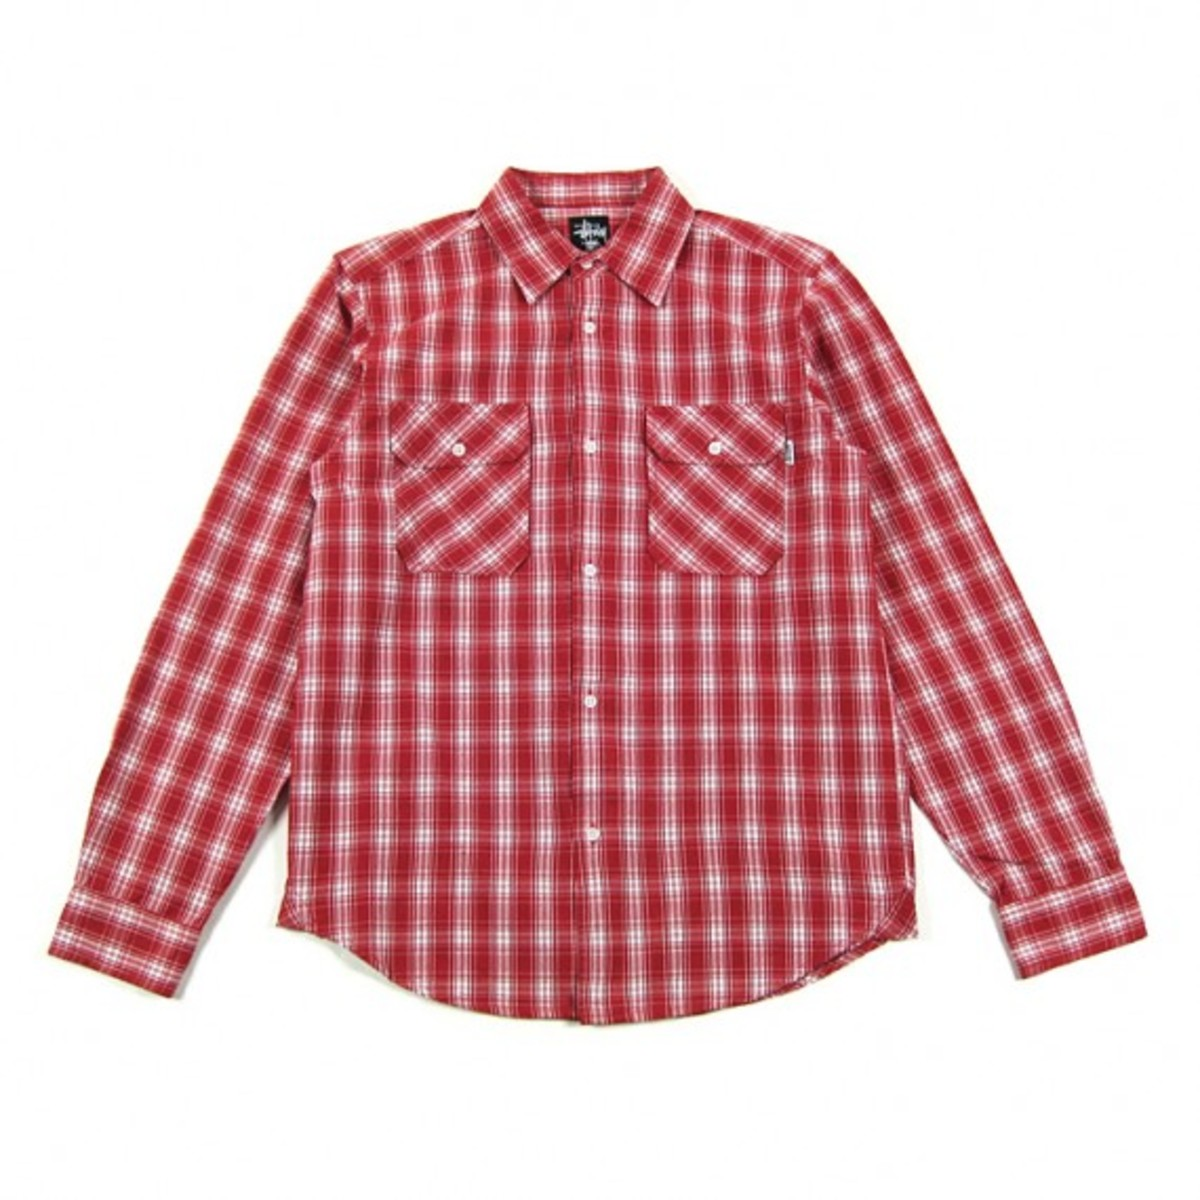 stussy-fall-2009-flannel-shirts-3